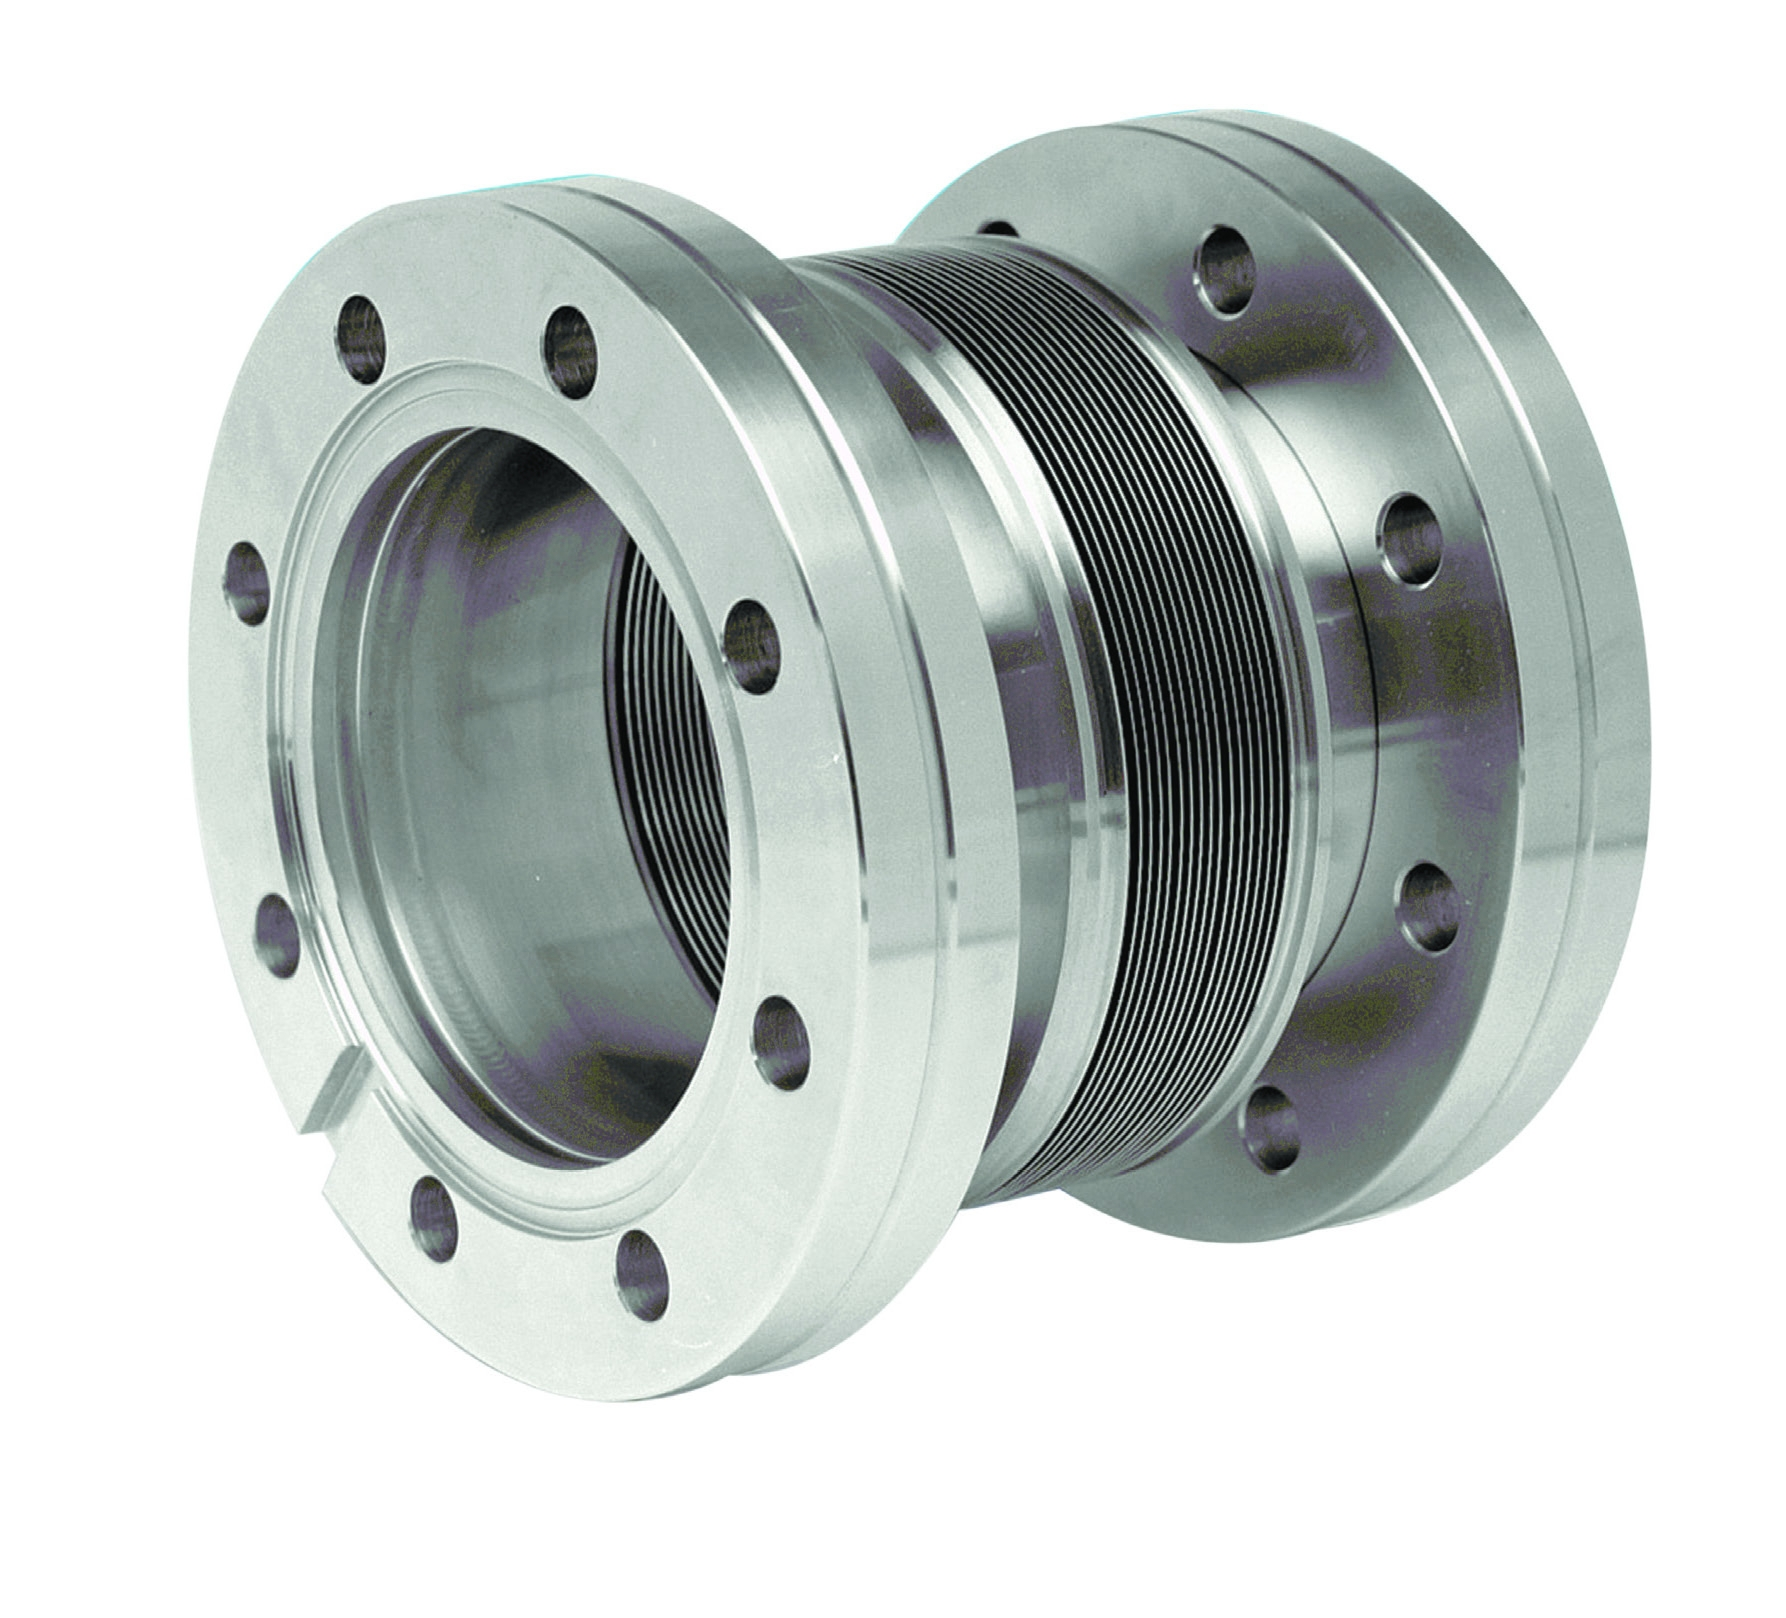 Edge welded bellow with DN100CF flanges, L = 122 - 322mm